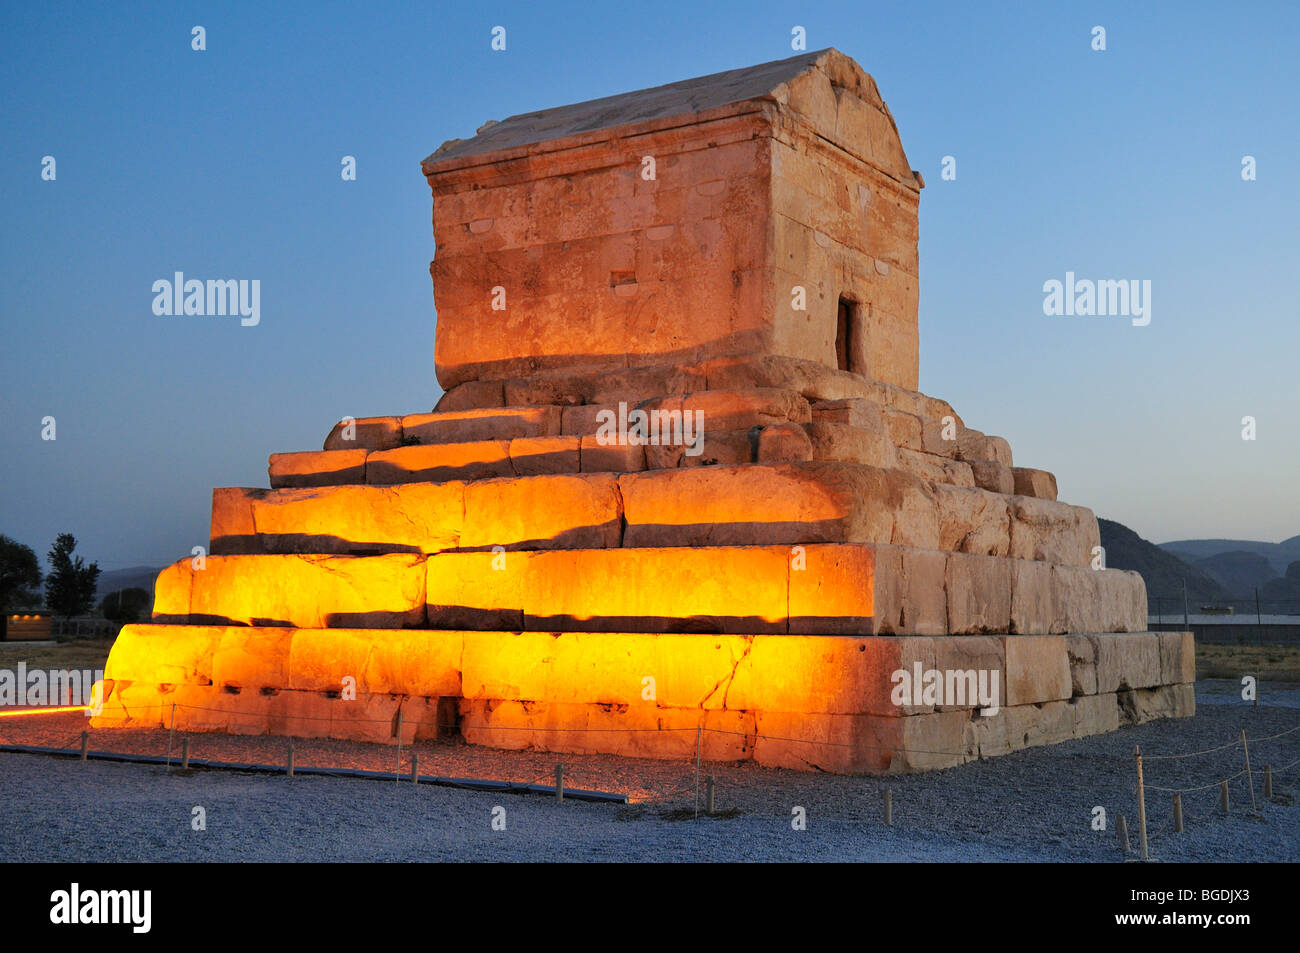 Tomb of Cyrus II., archeological site of Pasargadae, UNESCO World Heritage Site, Persia, Iran, Asia - Stock Image